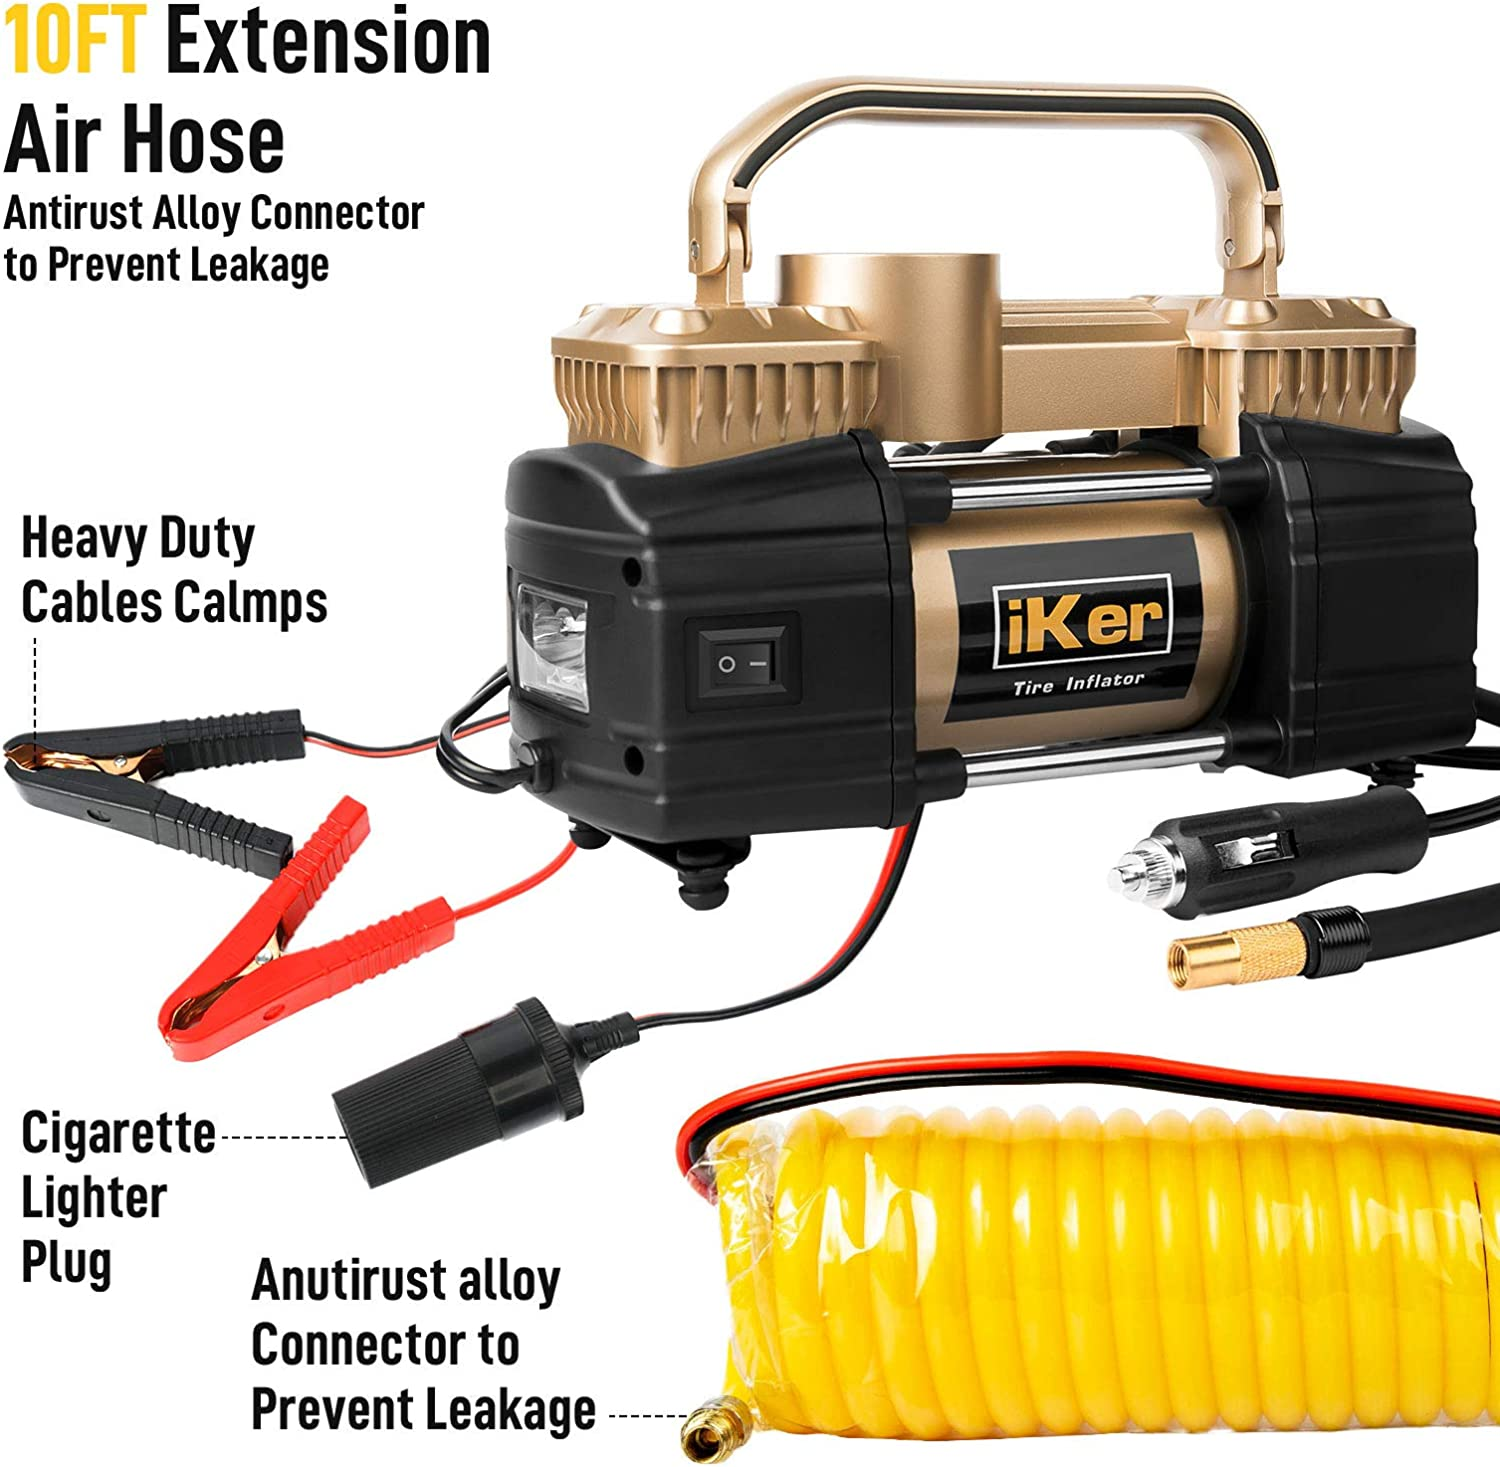 iKer Portable Air Compressor for Car Tires,12V Tire Inflator Heavy Duty Double Cylinders Metal Air Pump 150PSI with LED Work Lights,16.5ft Extension Air Hose and Tire Repair Kit